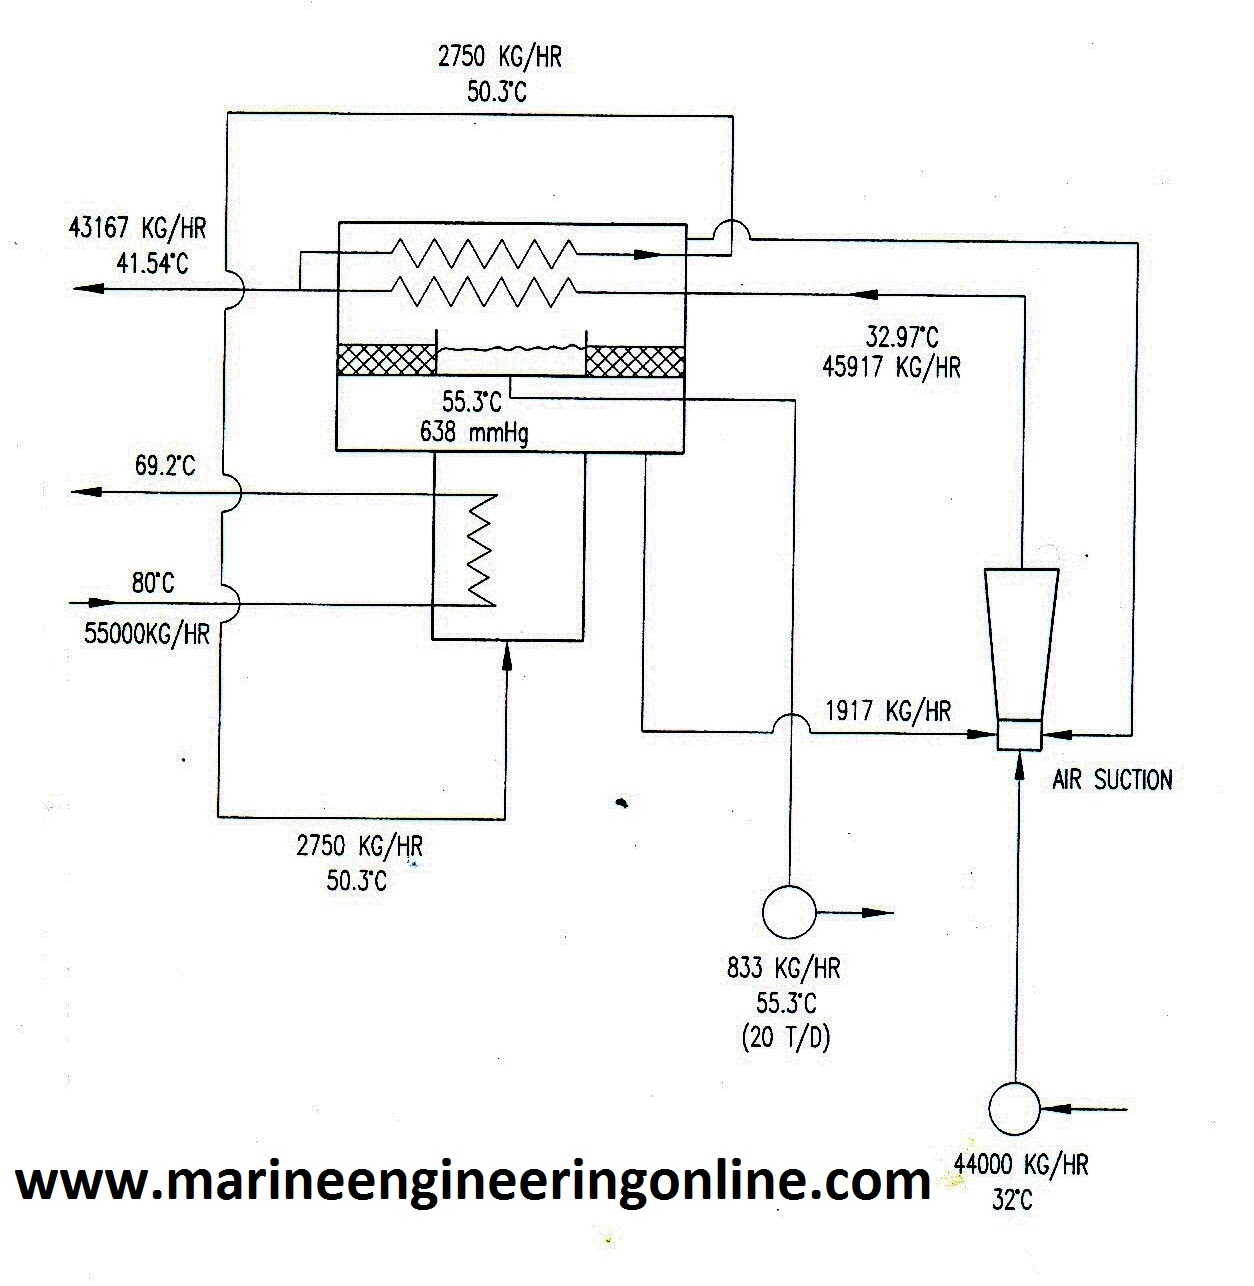 Electric Heater Wiring House Auto Electrical Diagram Of Traulsen G23000 Fresh Water Generator Or Evaporator Used On Ships